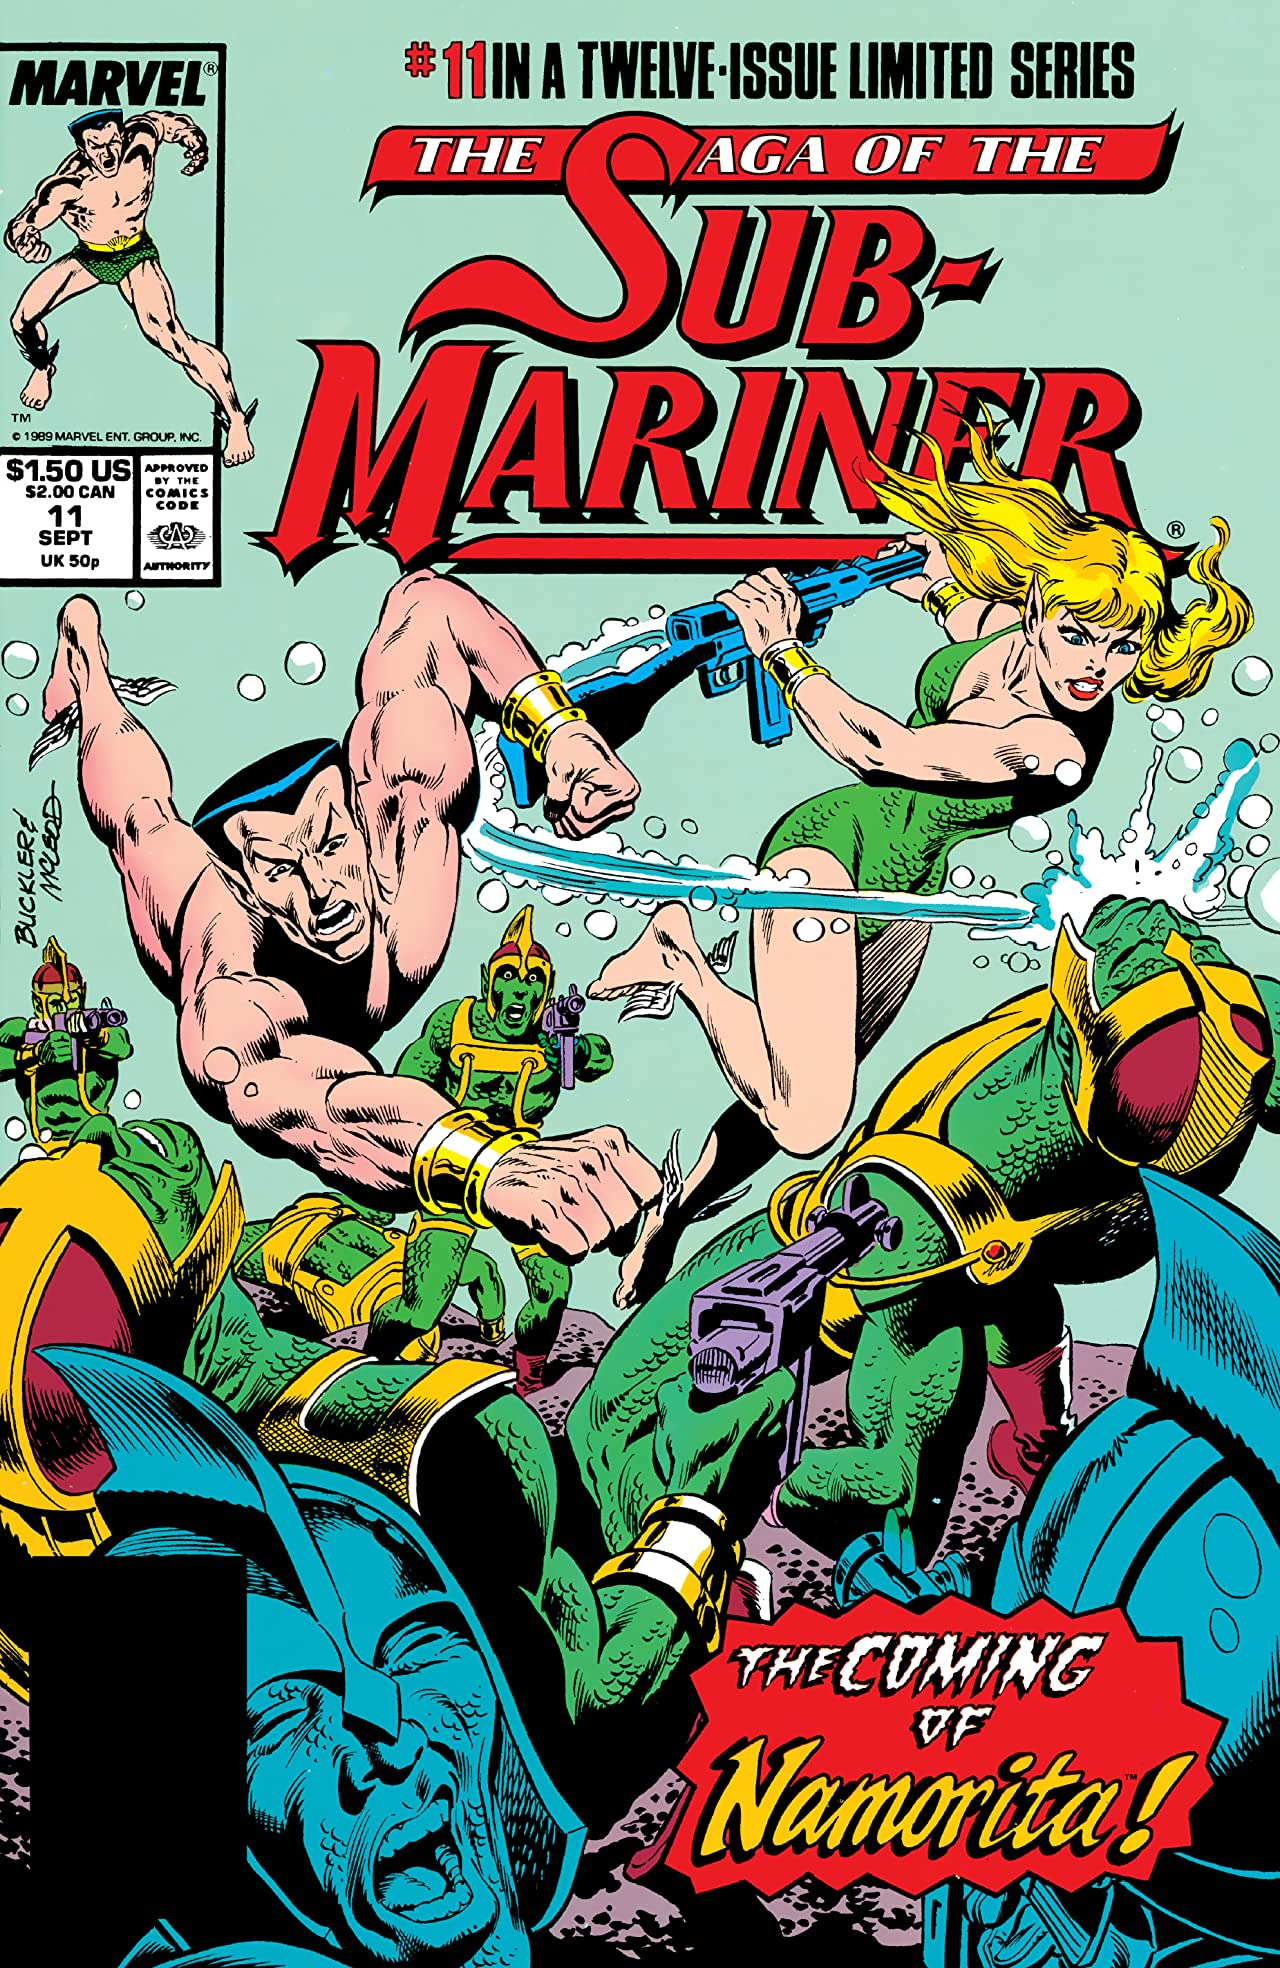 Saga of the Sub-Mariner (1988-1989) #11 (of 12)